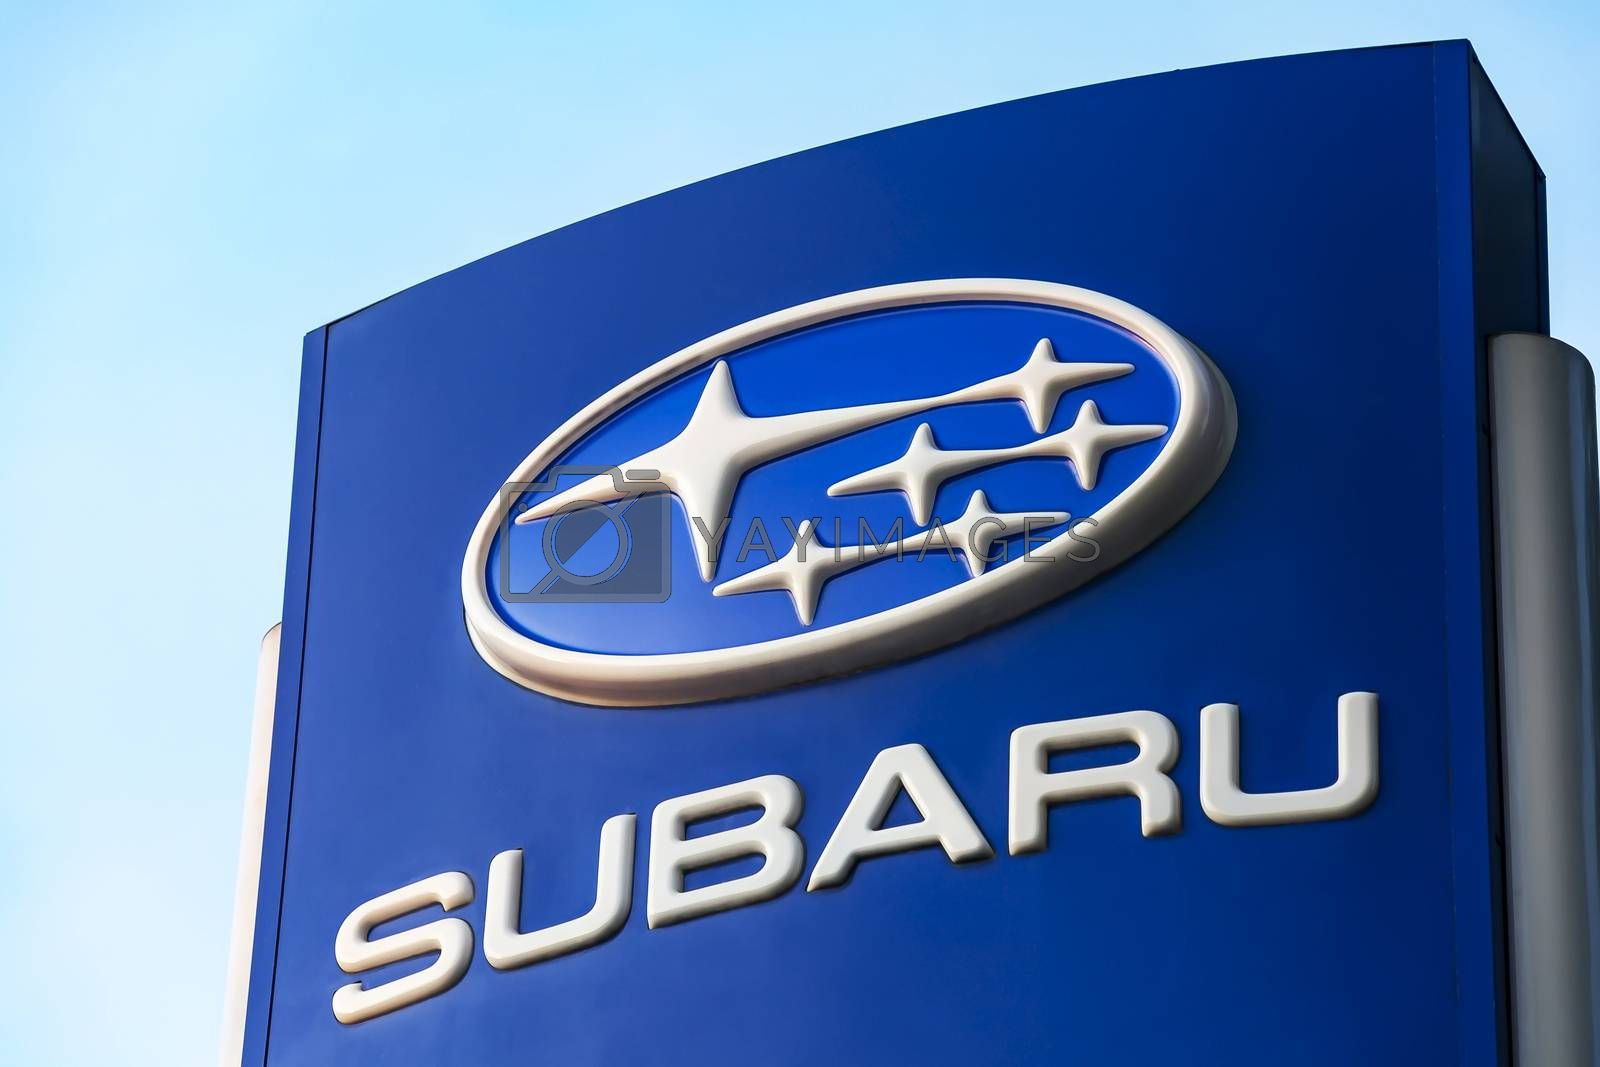 Logo of the Japanese automobile company Subaru